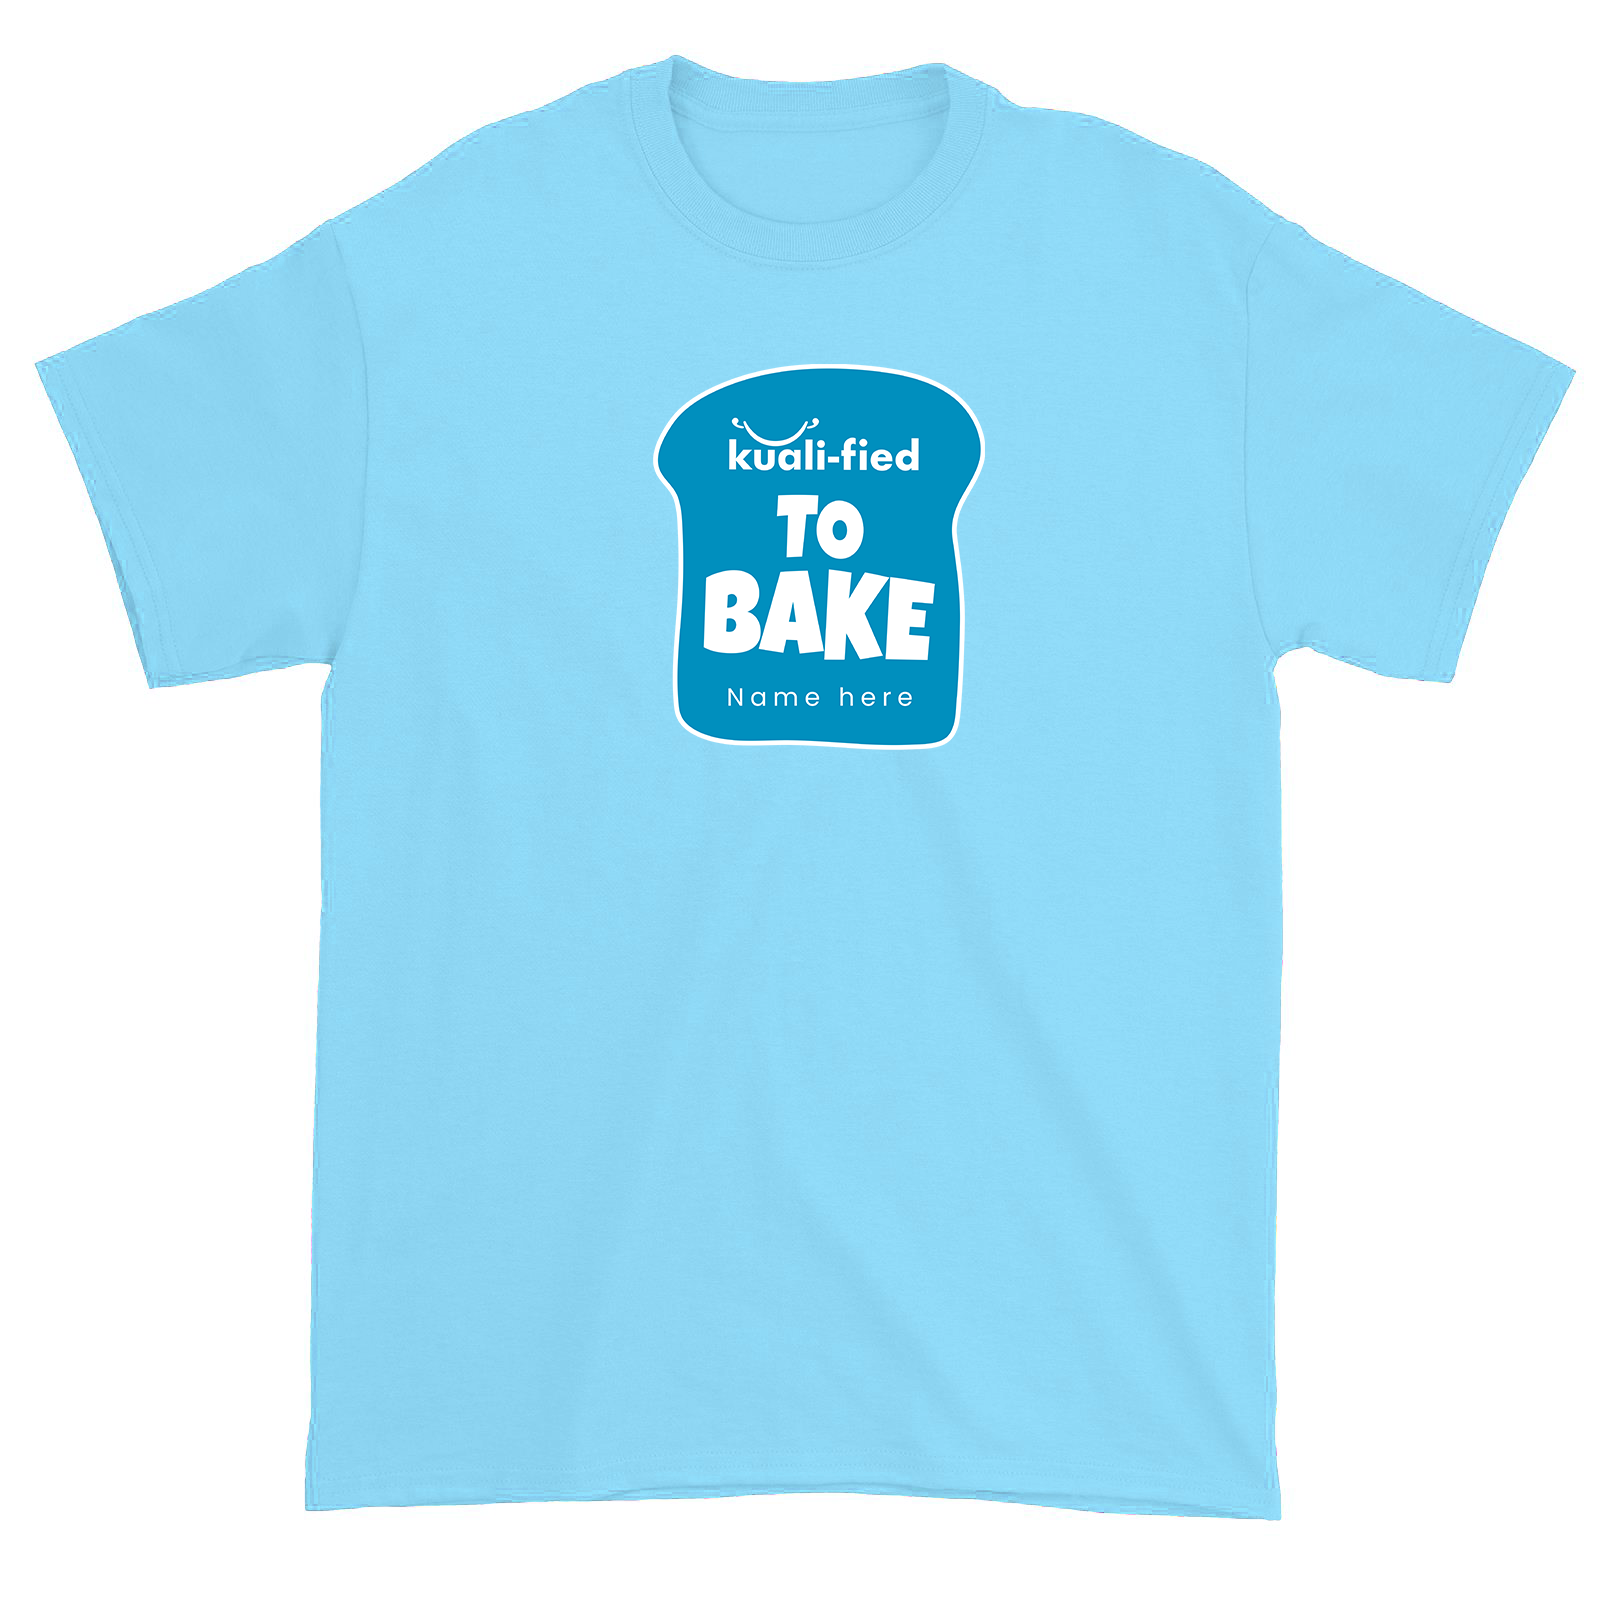 Kuali Cotton T-Shirt (Kuali-fied to Bake- Toast)